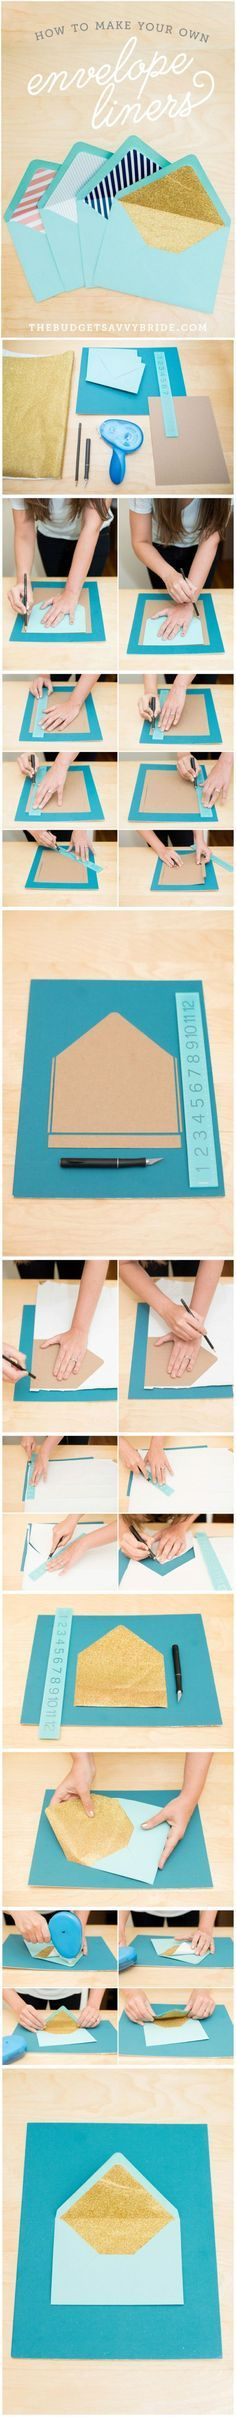 Diy Envelope Liners Template | Card Making Ideas | Pinterest | Diy